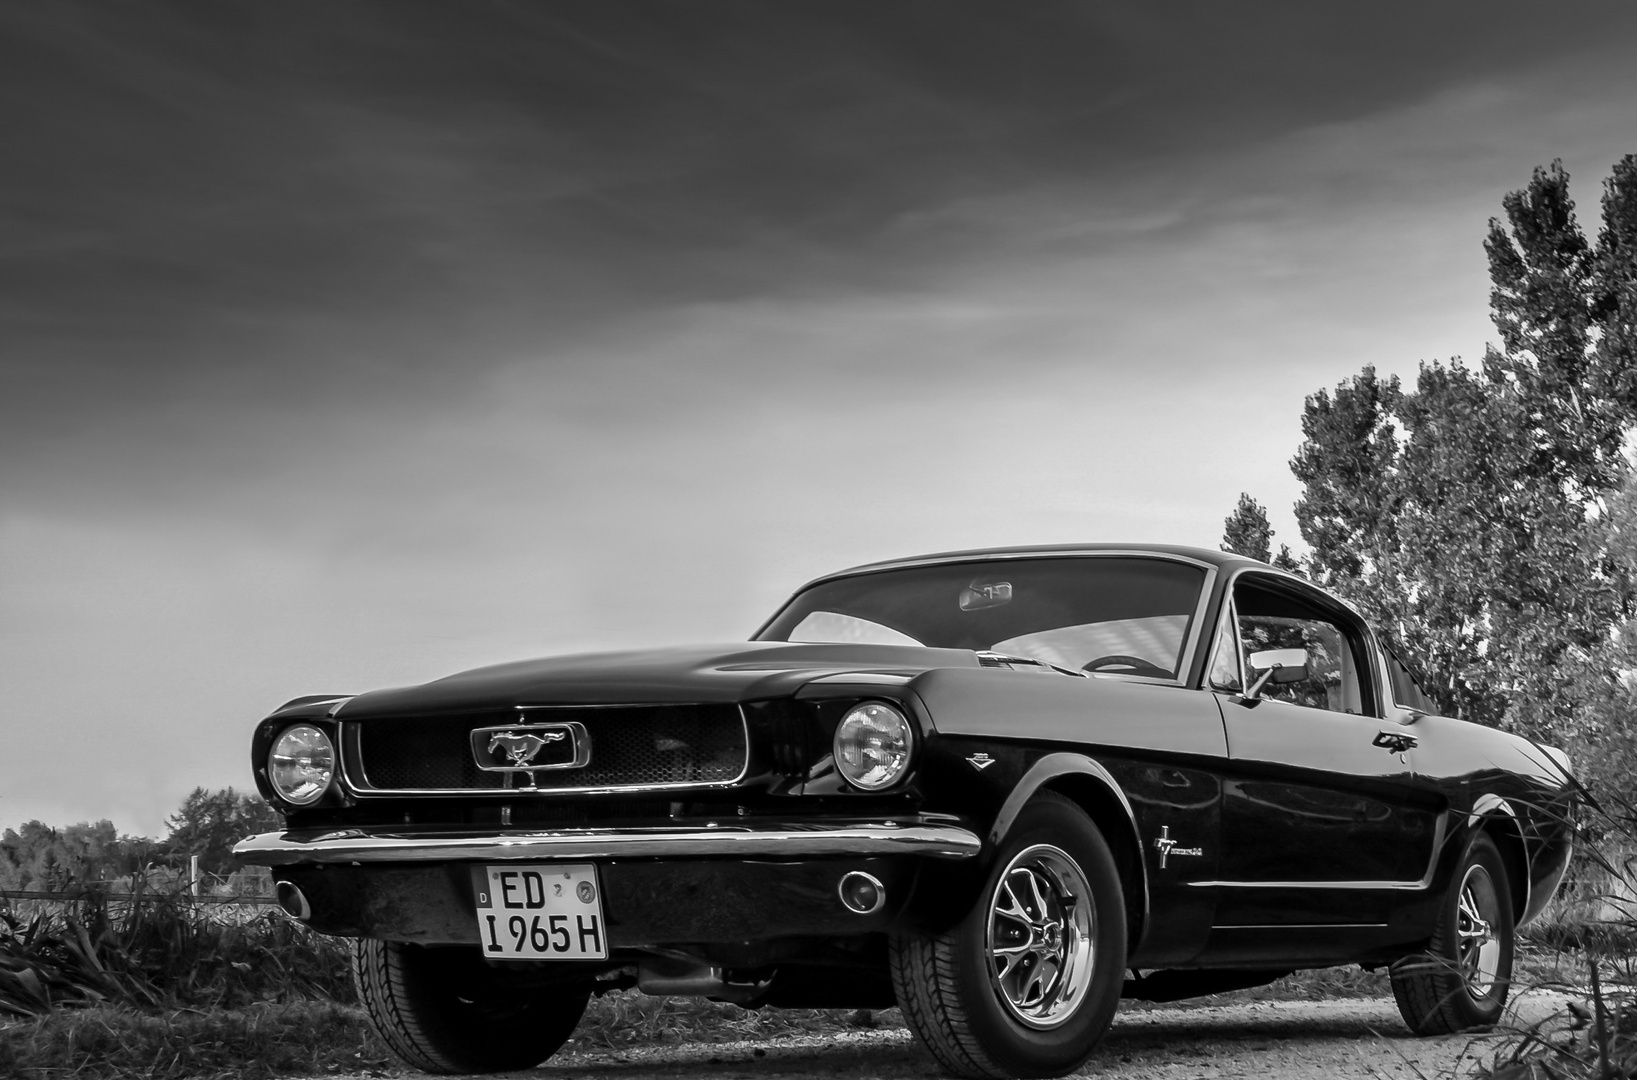 Ford Mustang Fastback 2+2 1965